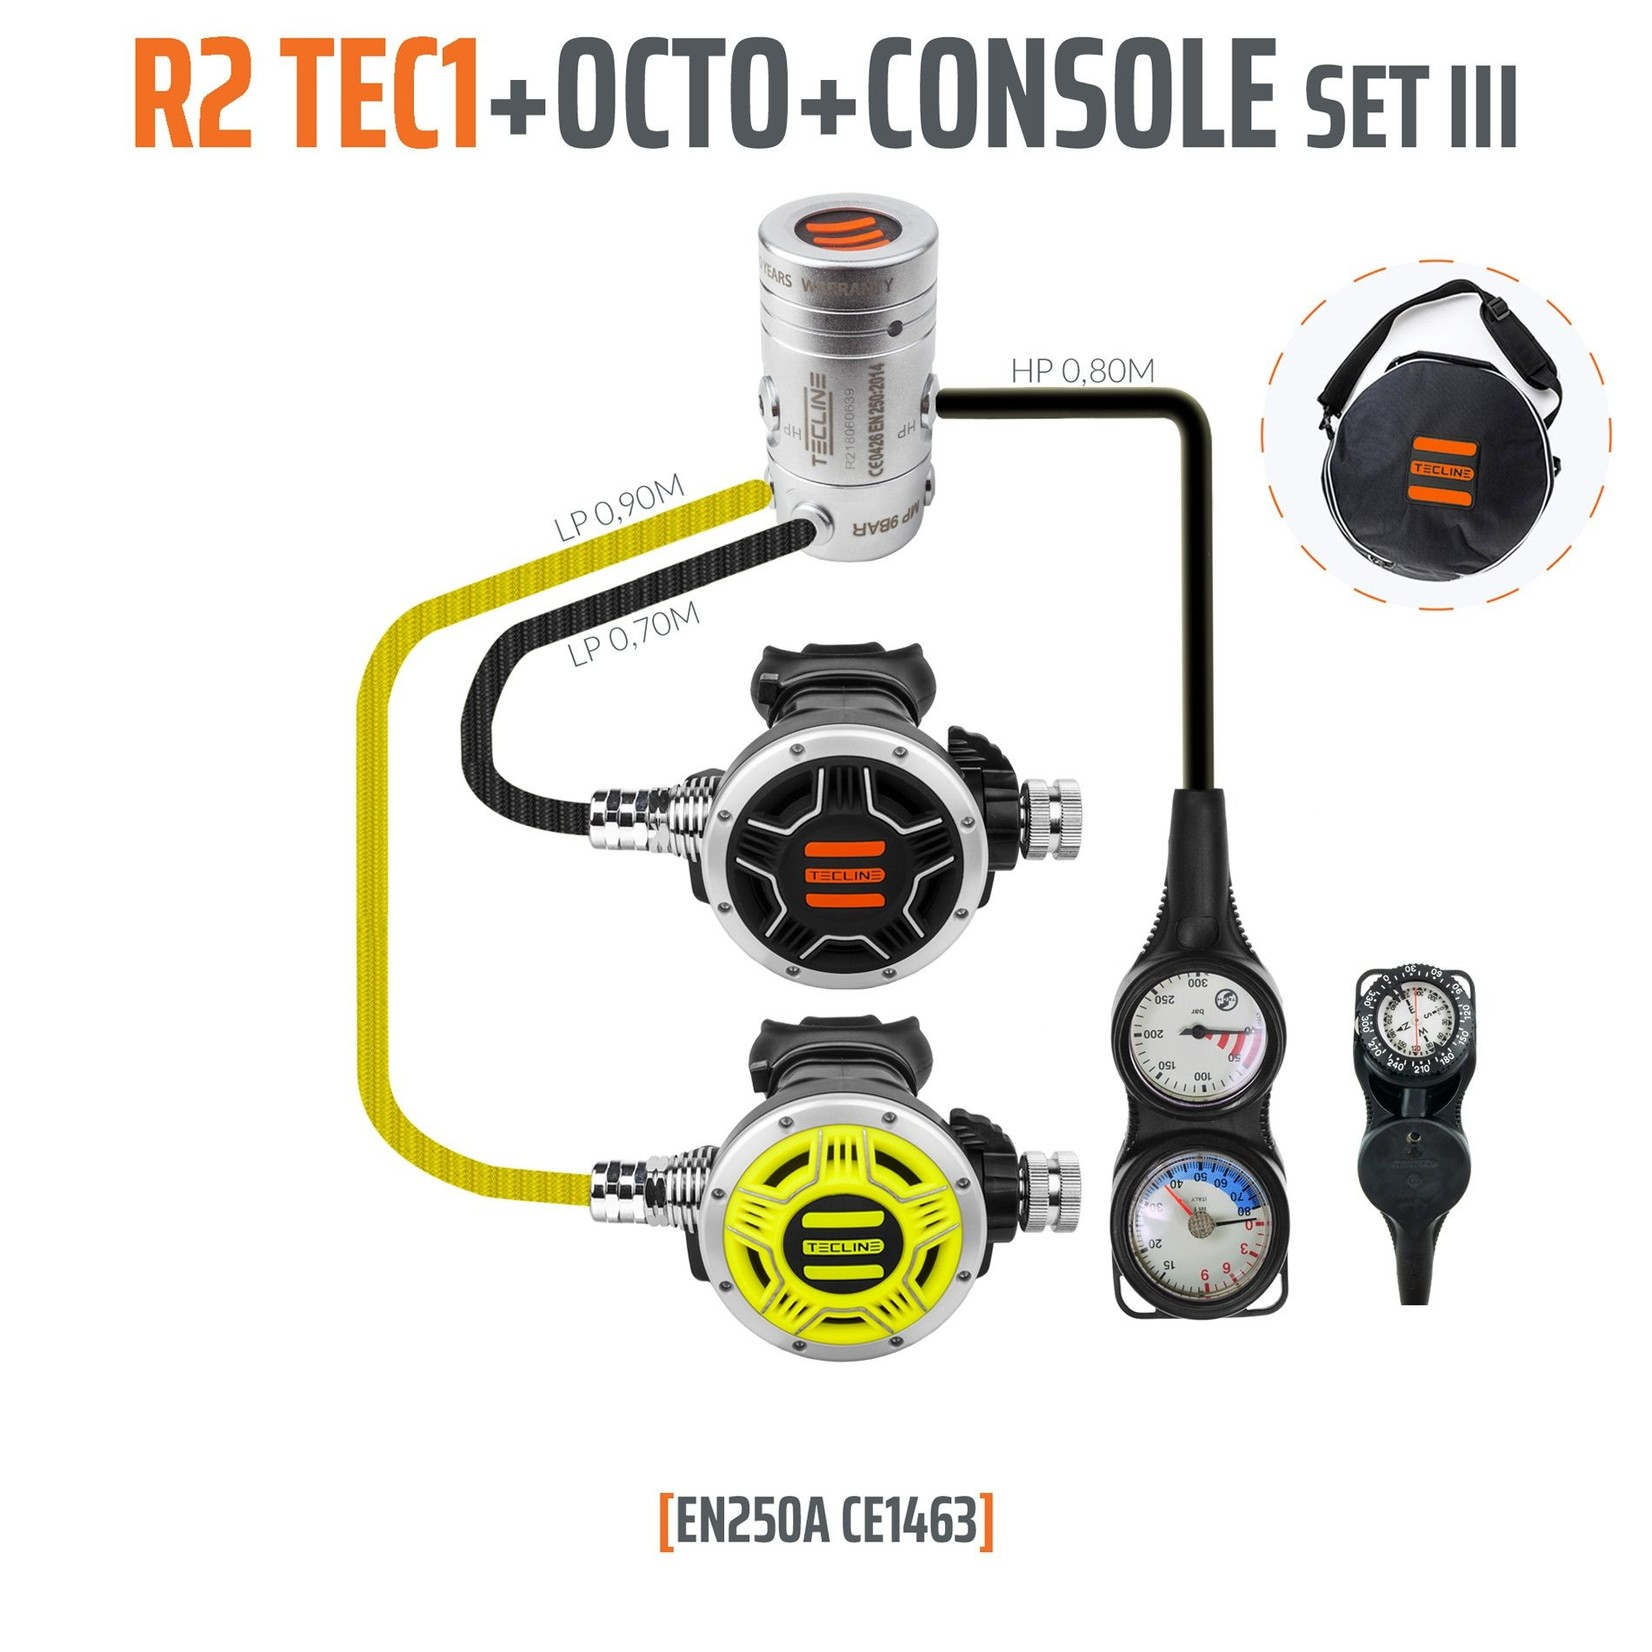 Tecline Regulator R2 TEC1 set III with octo and 3 elements console - EN250A